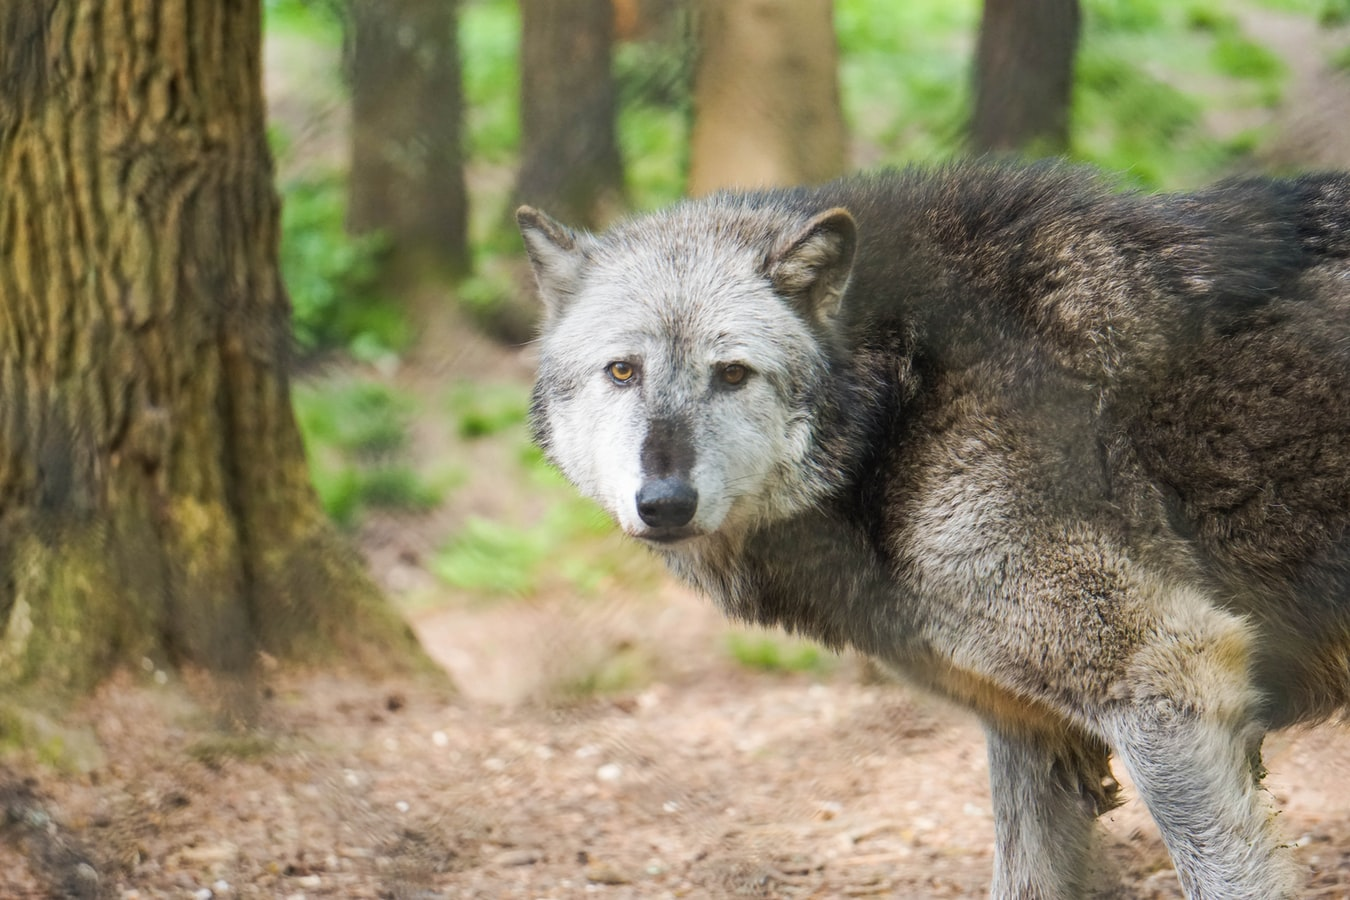 The Relentless Slaughter of Wolves Paved the Way for a Predator that Refuses to Die